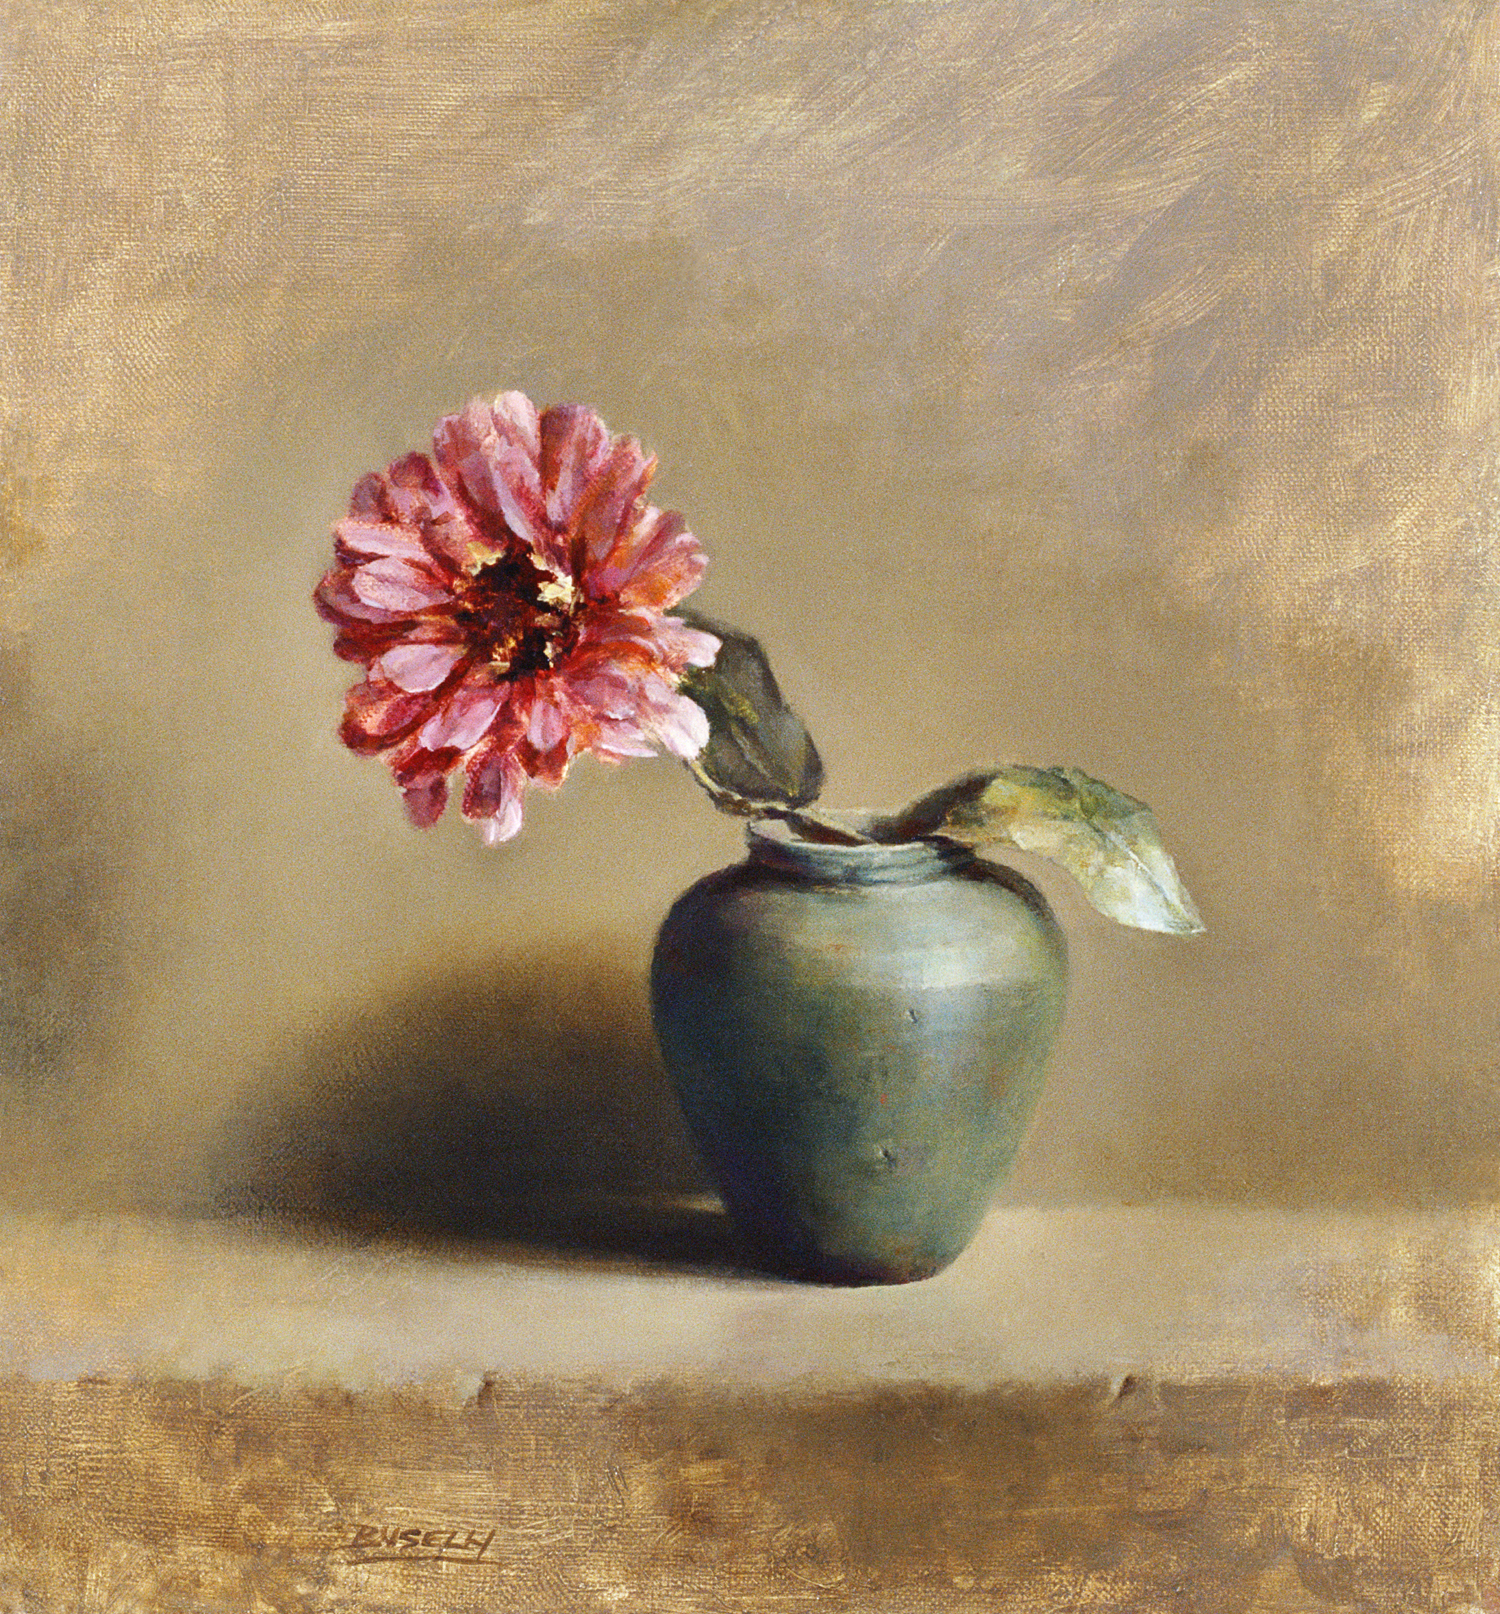 "SIMPLE PLEASURE   FINALIST FOR STILL LIFE CATEGORY | THE ARTIST'S MAGAZINE  oil on linen | 16"" X 15"""